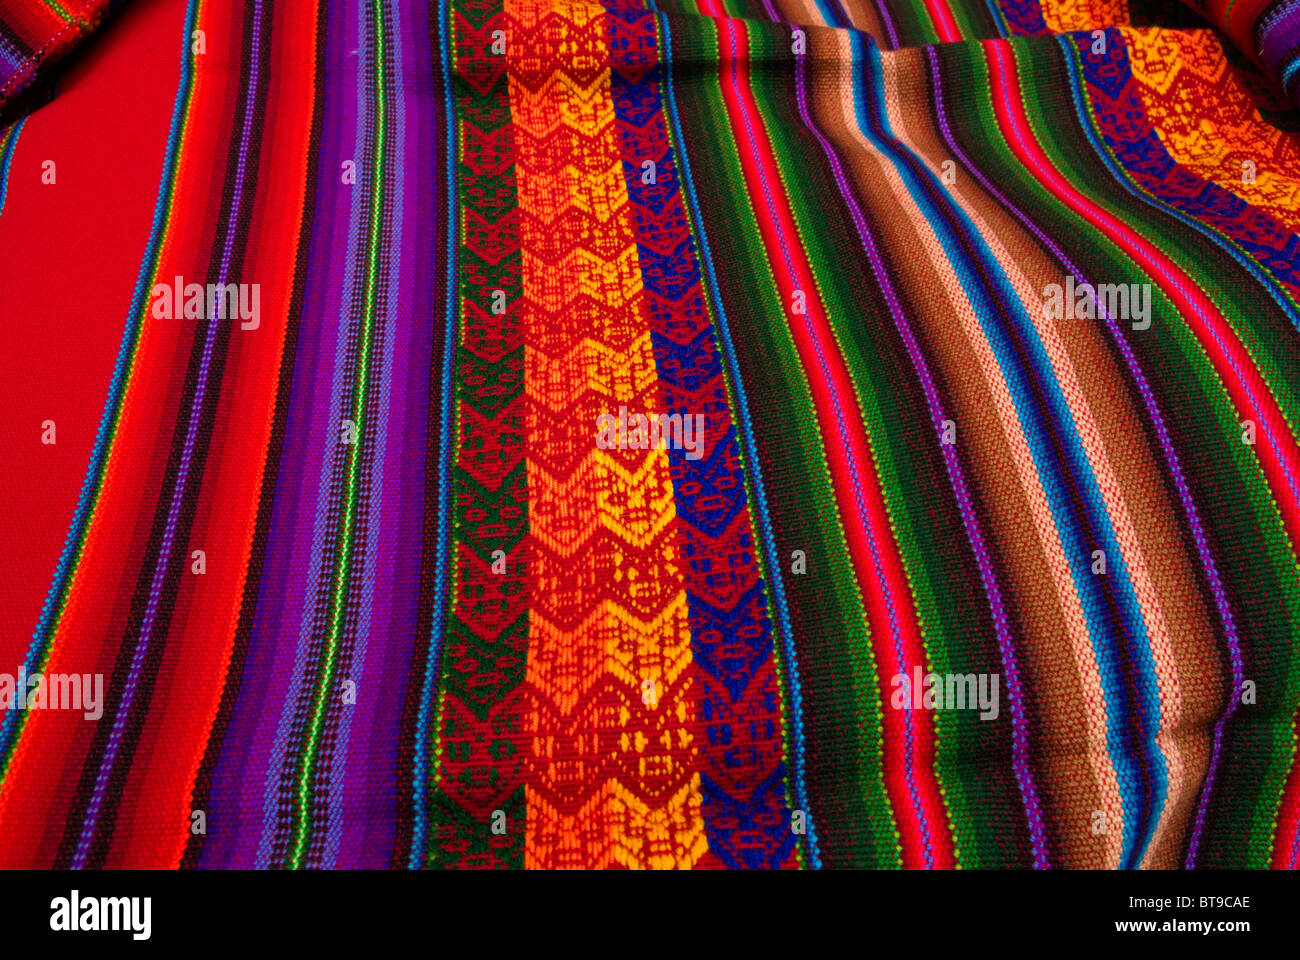 Peru, Sacred Valley, Pisaq, Sunday Market, bright colors in woven Peruvian fabric, many colors, stripes - Stock Image